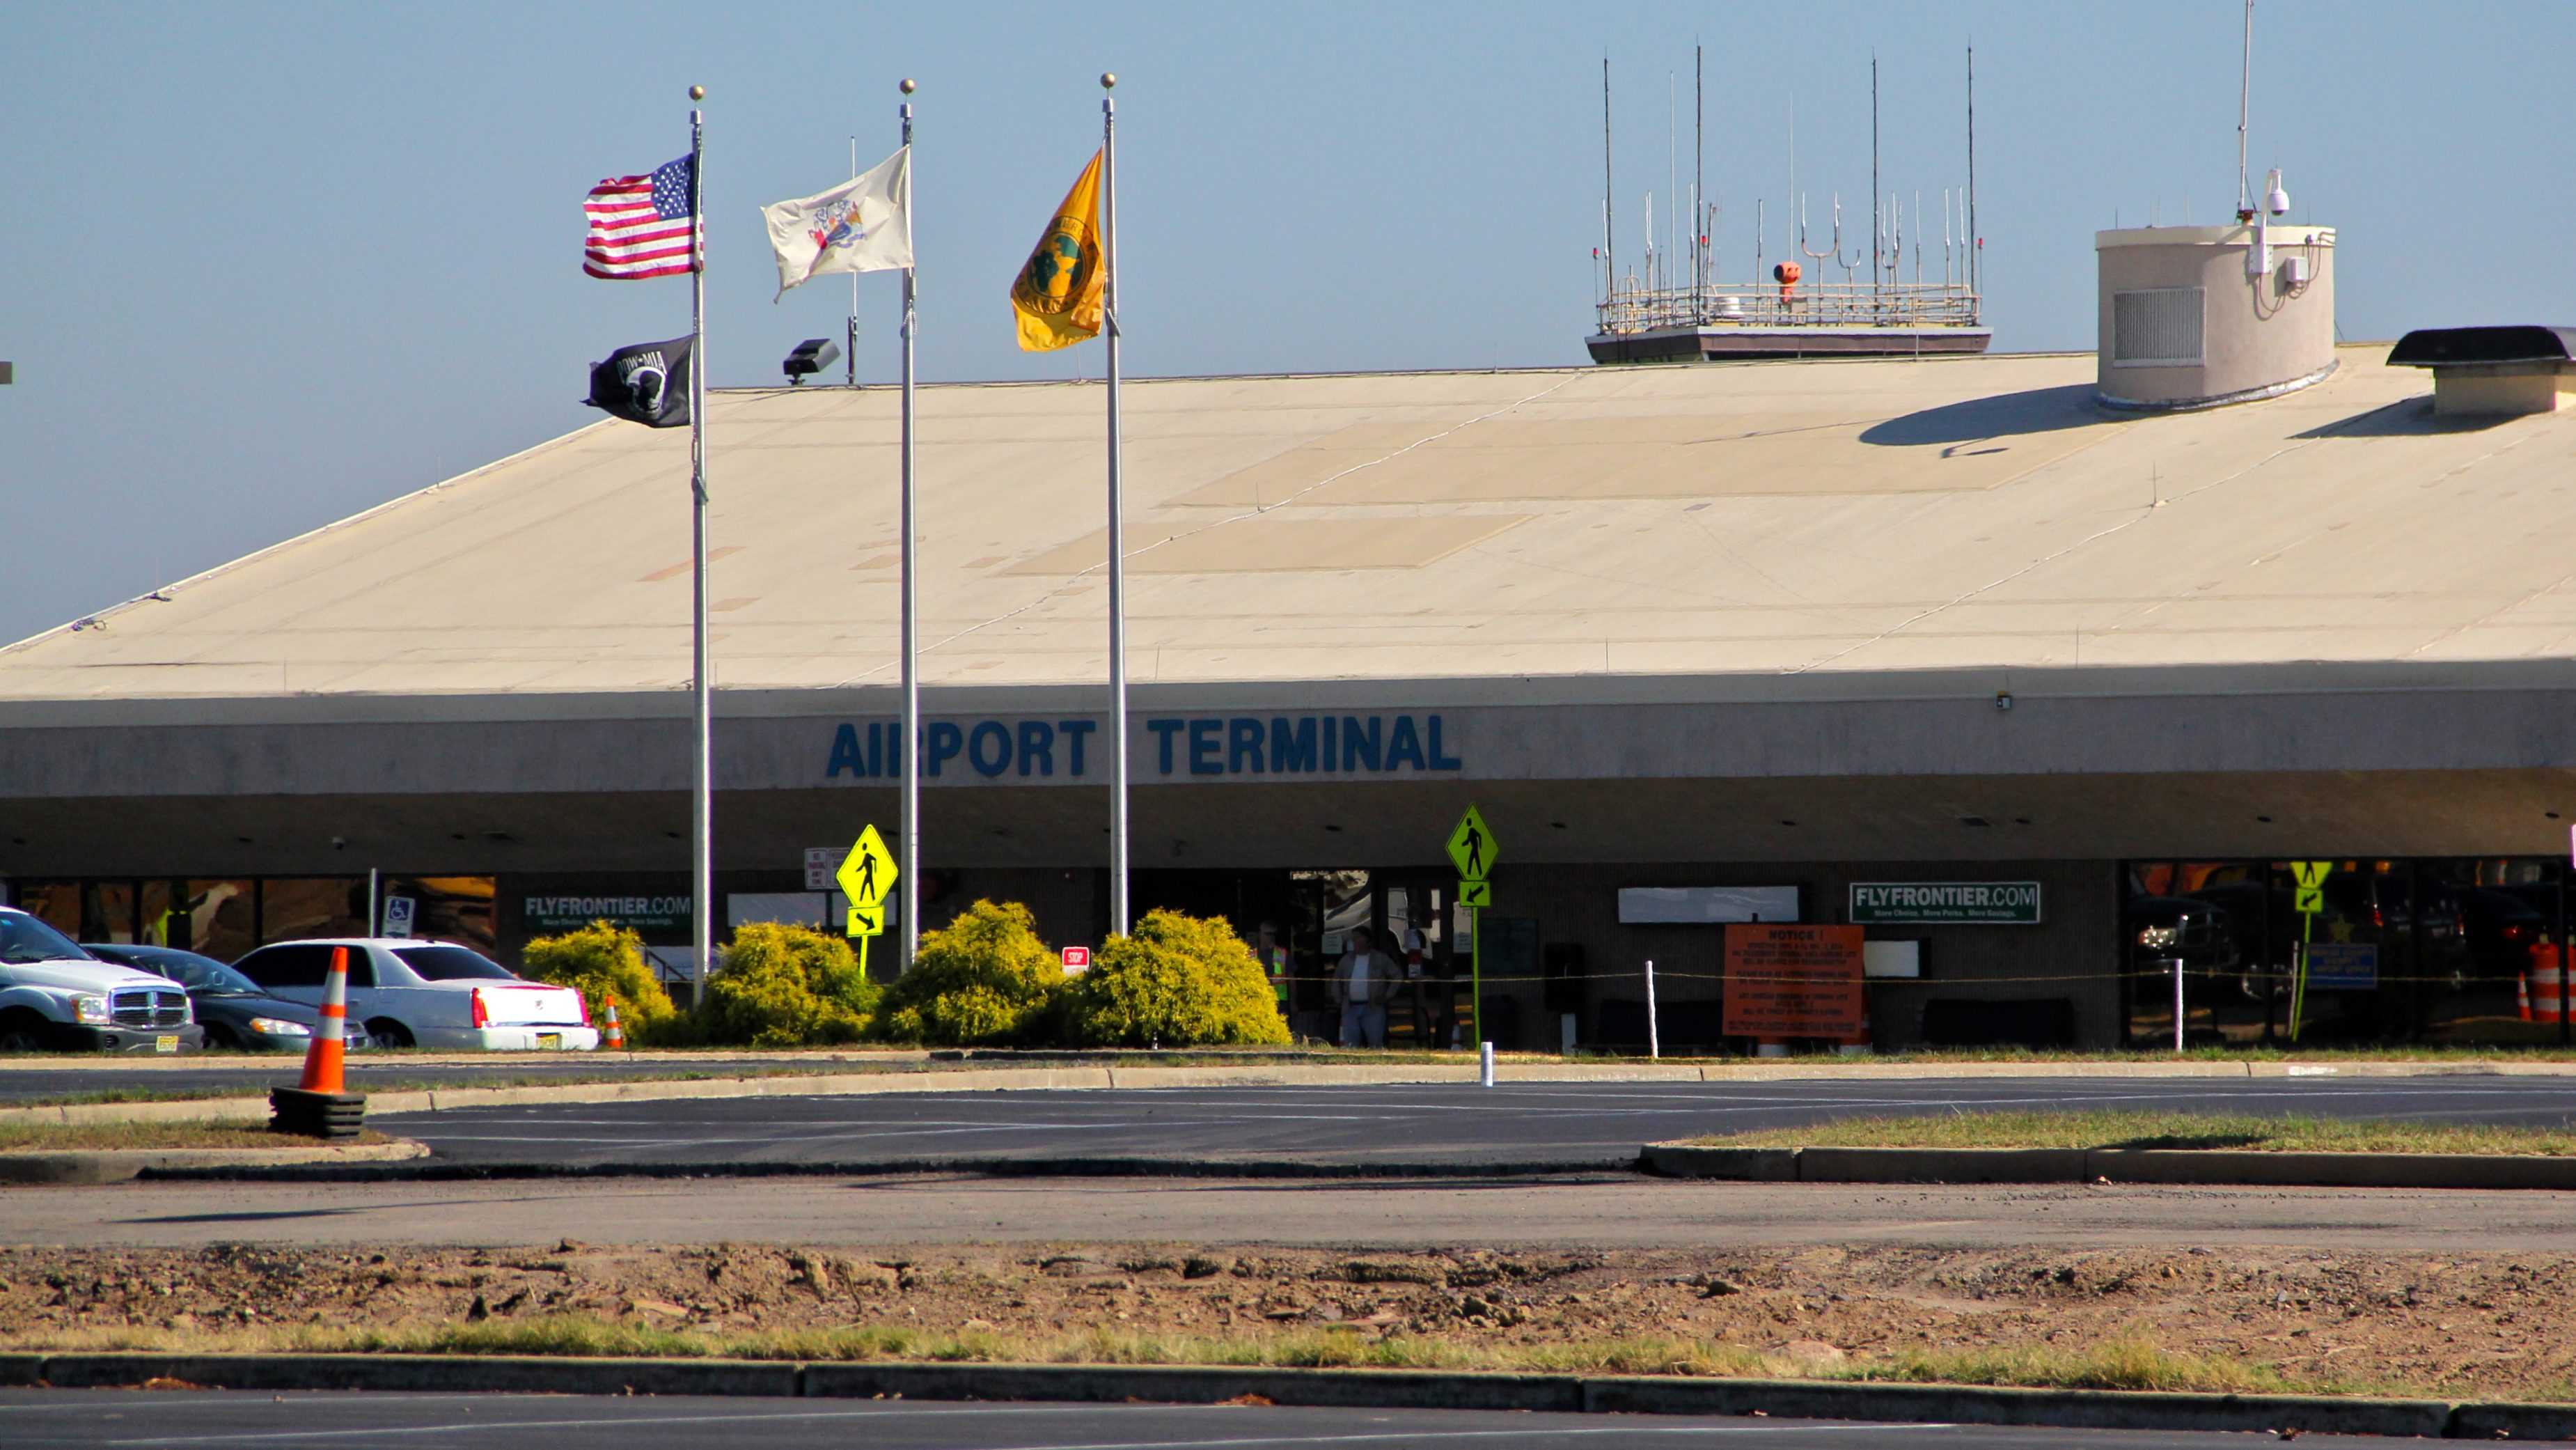 Trenton-Mercer Airport expansion plans worry neighbors in